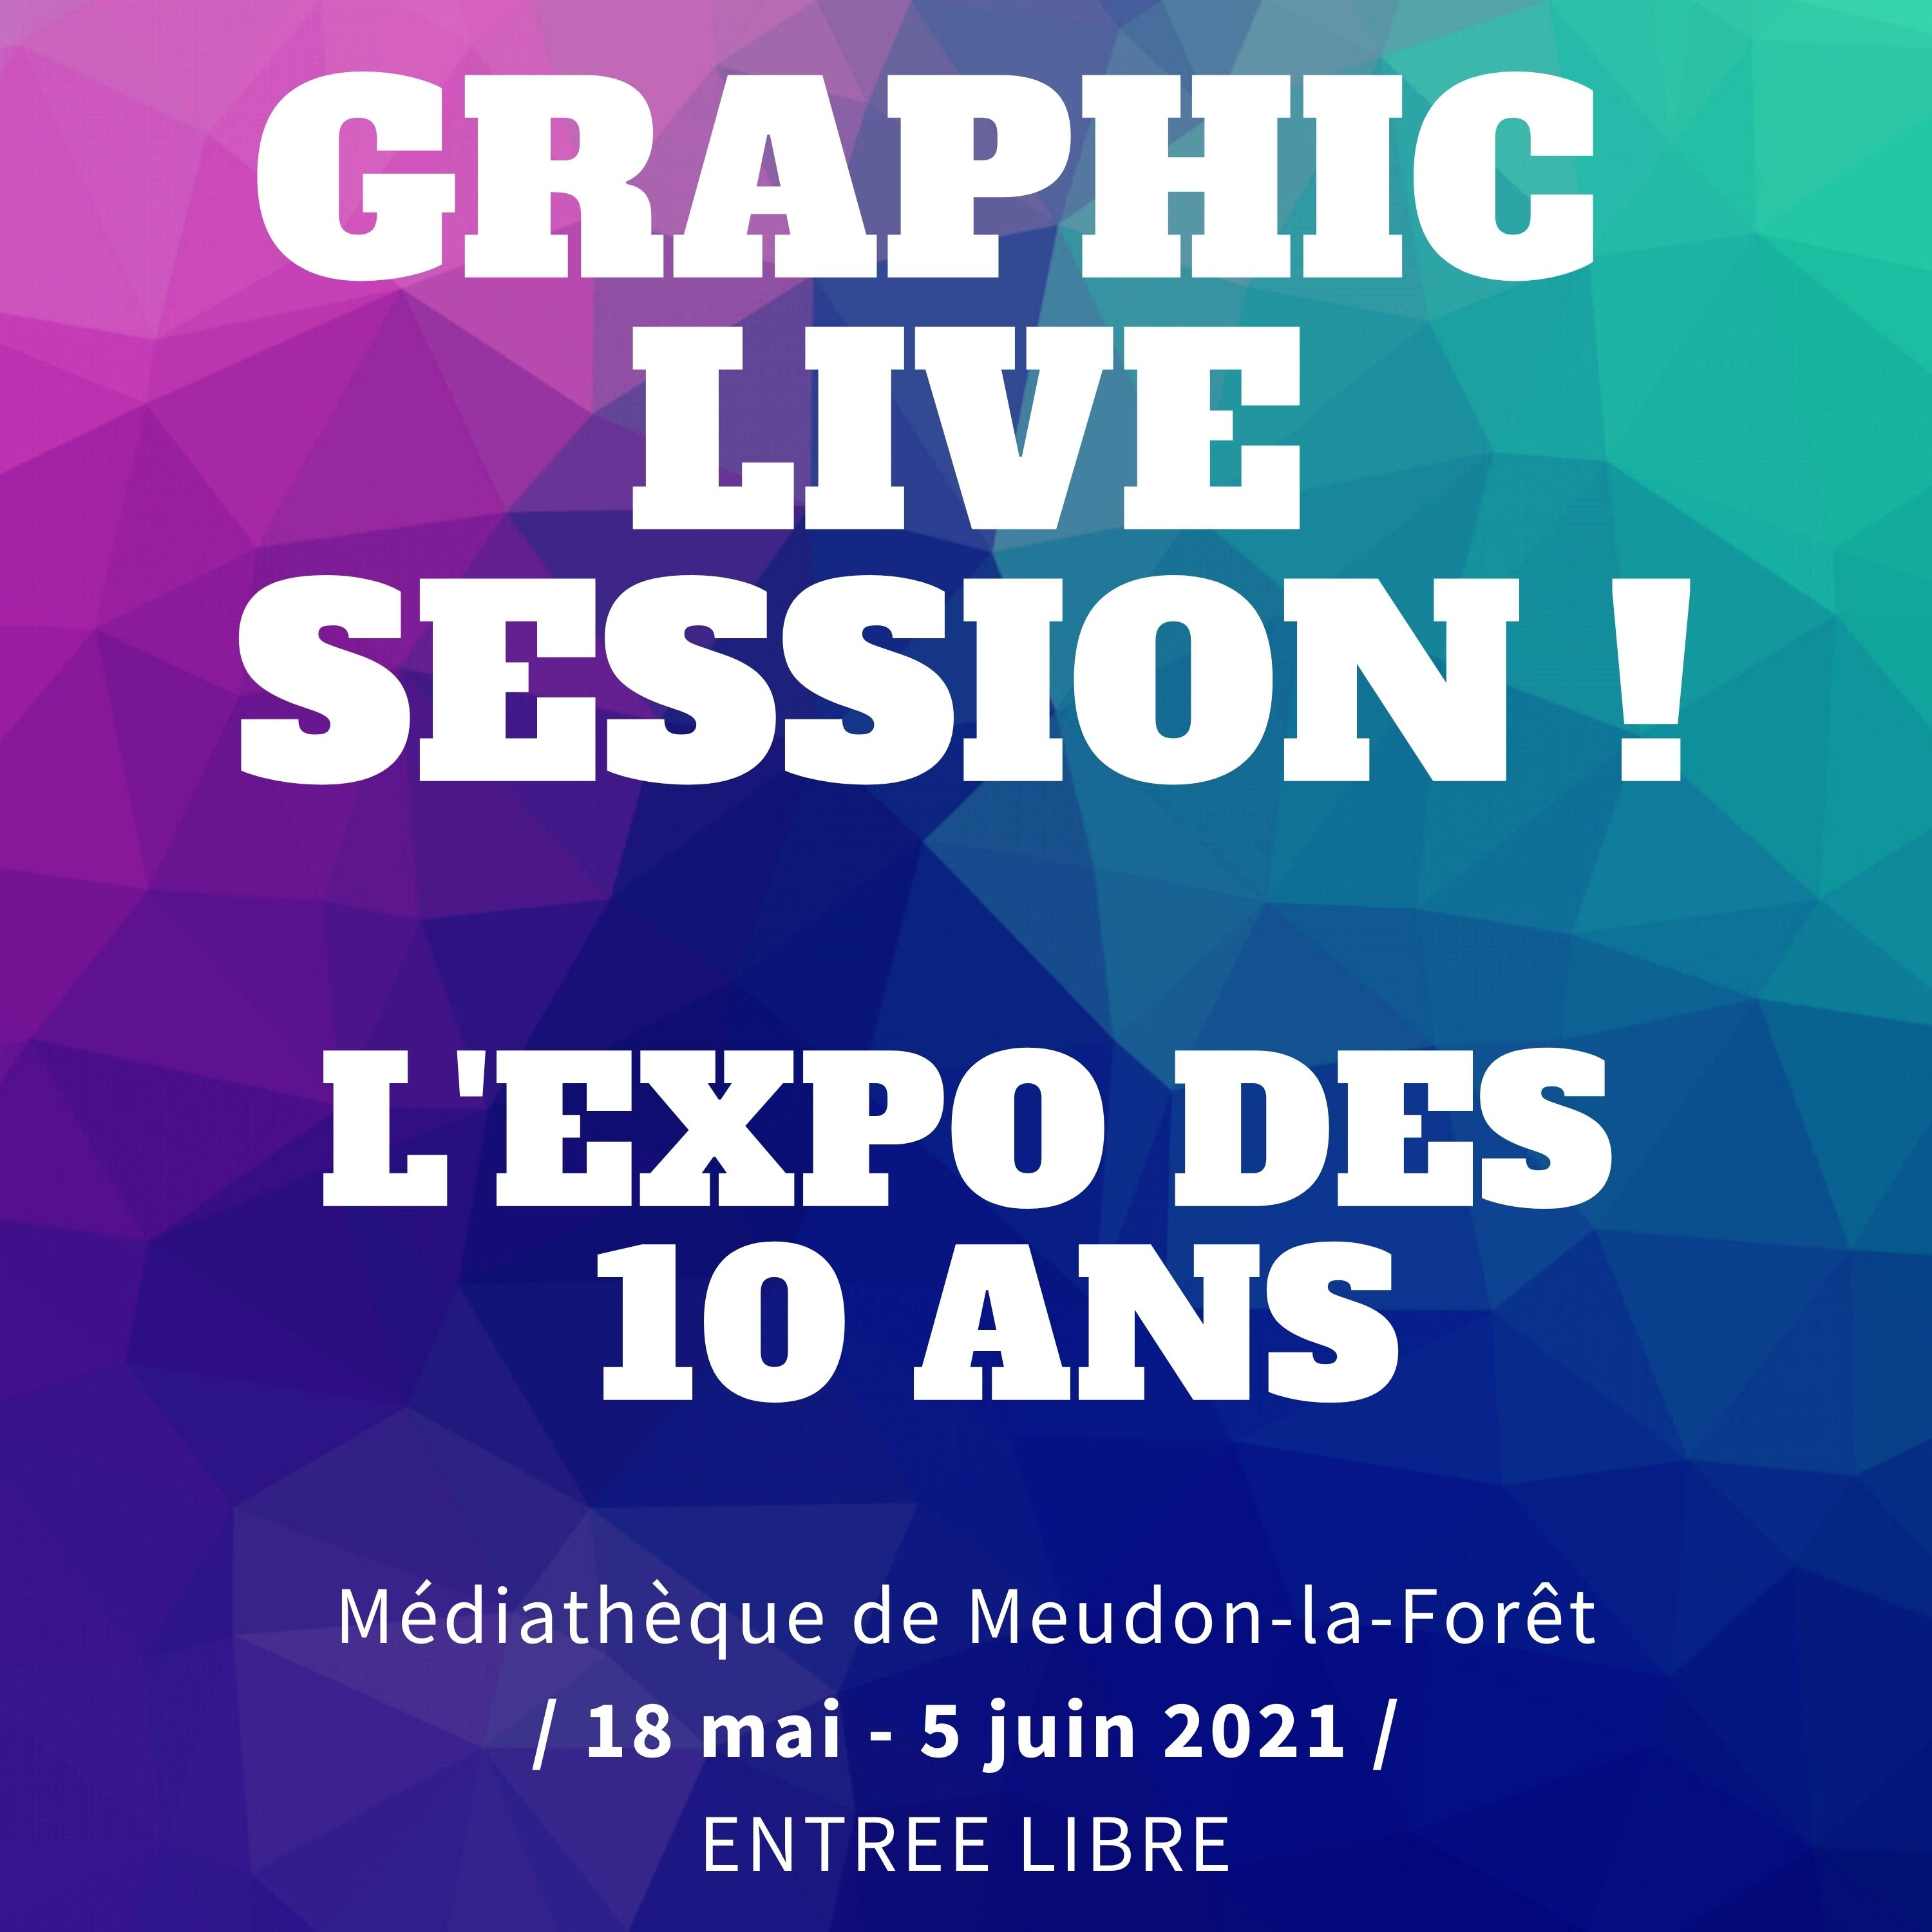 Exposition Graphic Live Session 2021 |